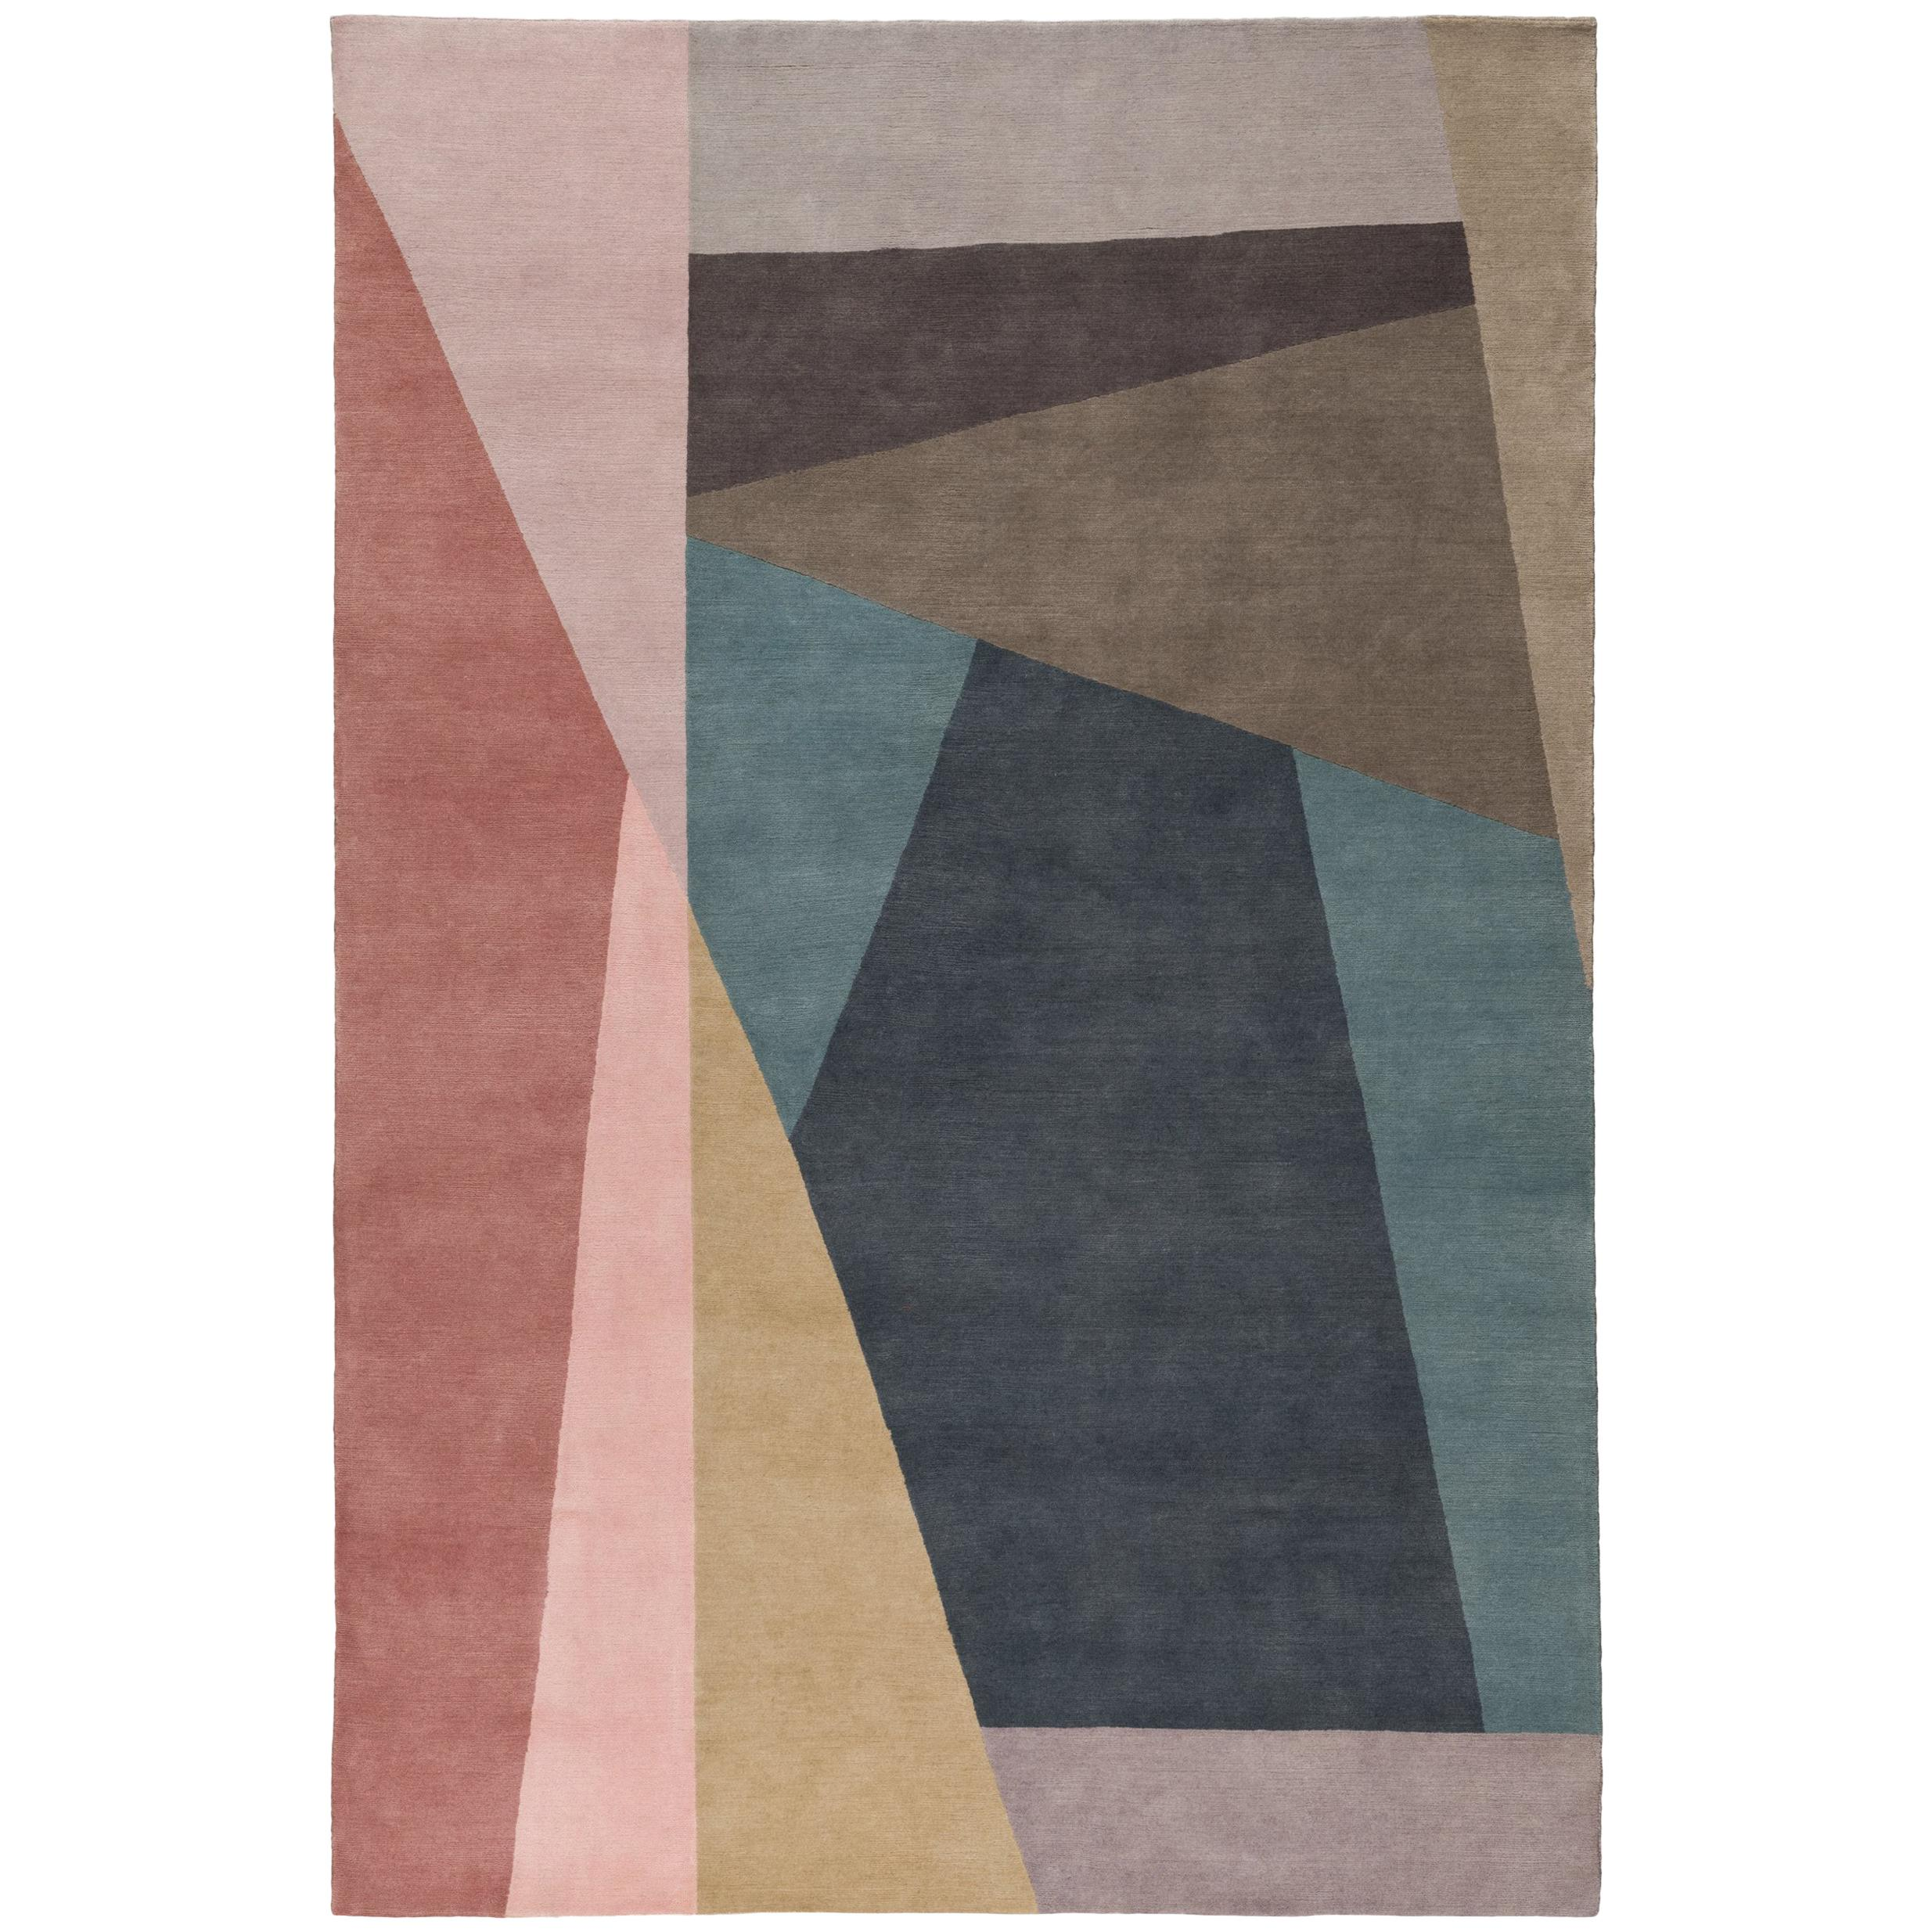 Split Bright Hand-Knotted 10x8 Rug in Wool by Paul Smith